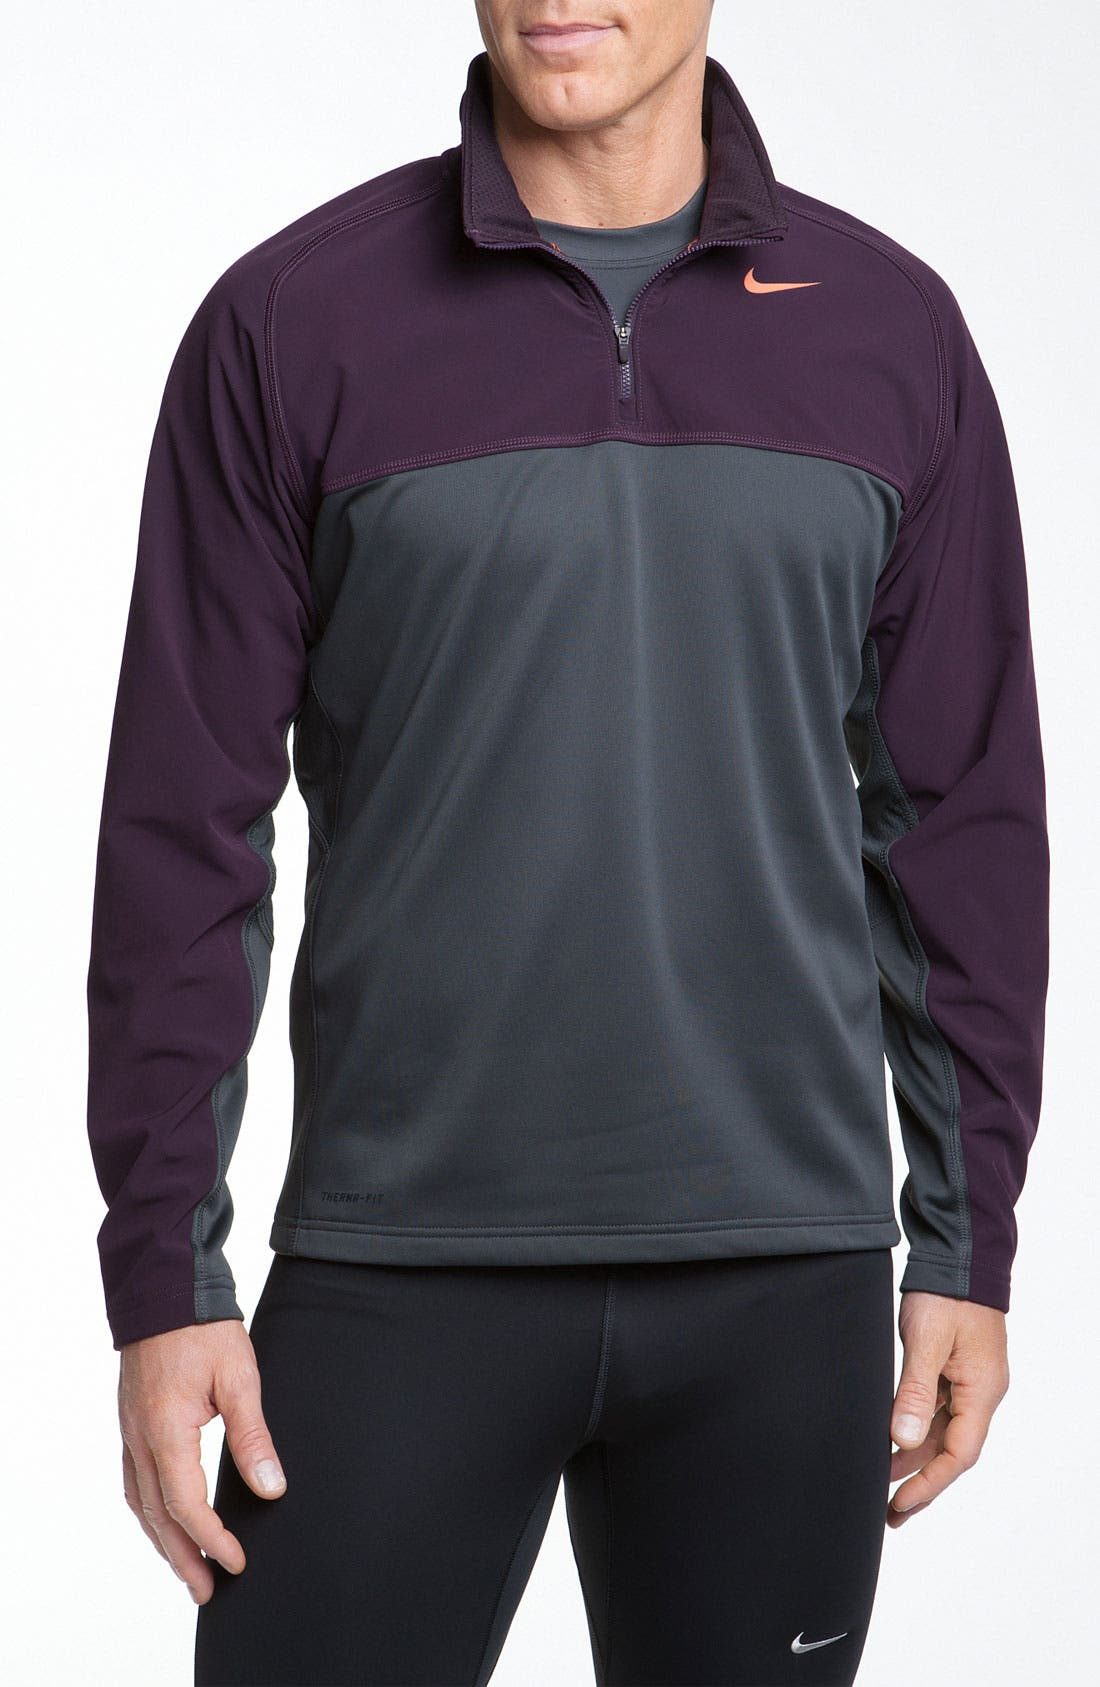 Alternate Image 1 Selected - Nike 'Shield' Therma-FIT Fleece Quarter Zip Top